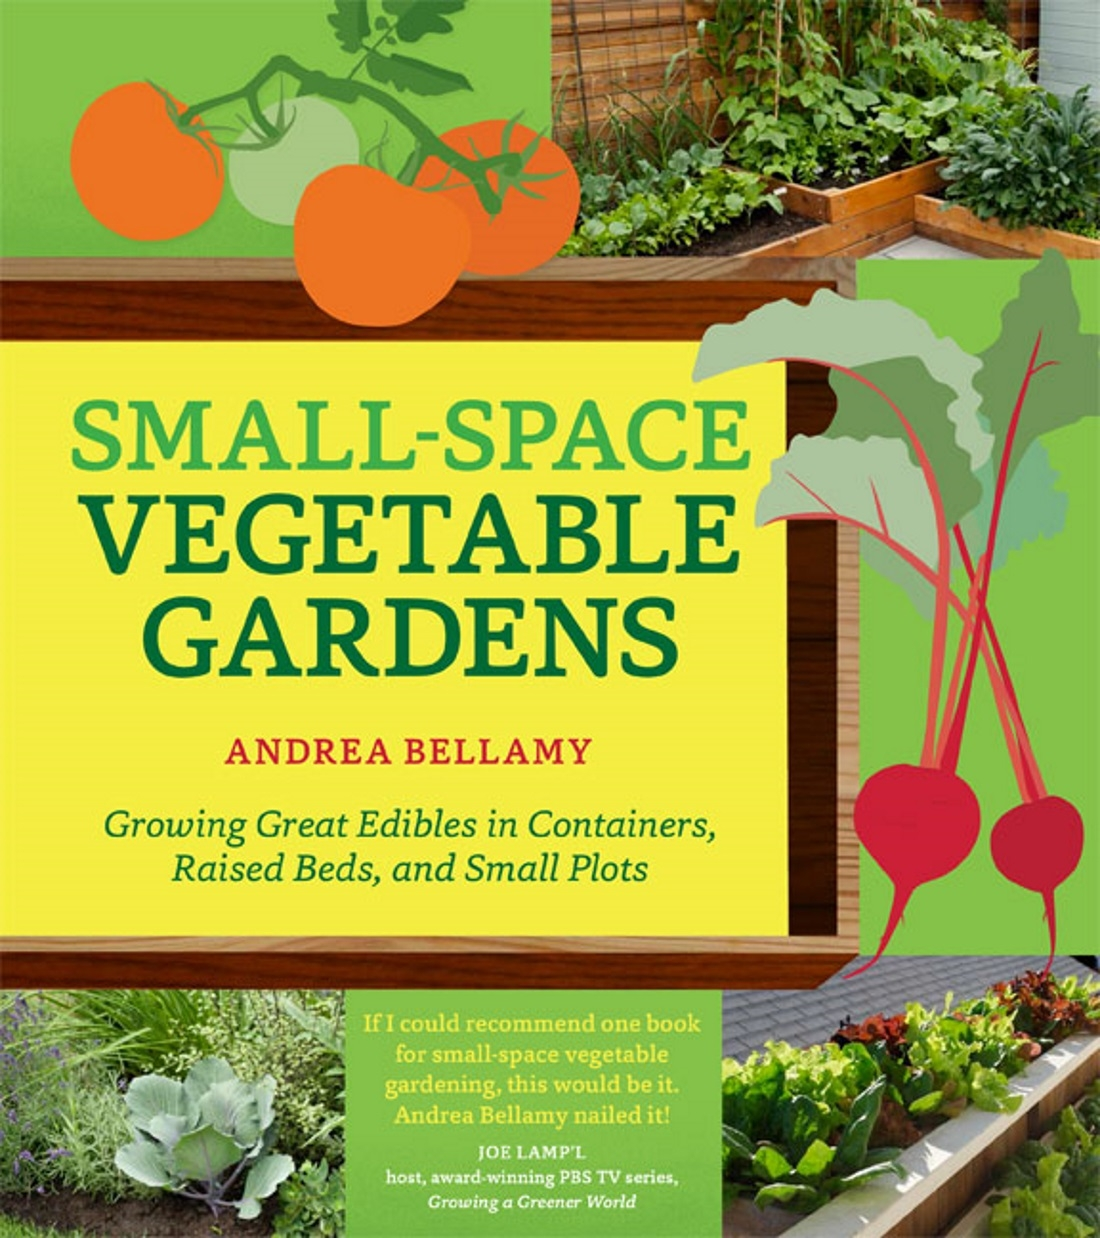 Small space vegetable gardens gardenbunch - Growing vegetables in small spaces collection ...